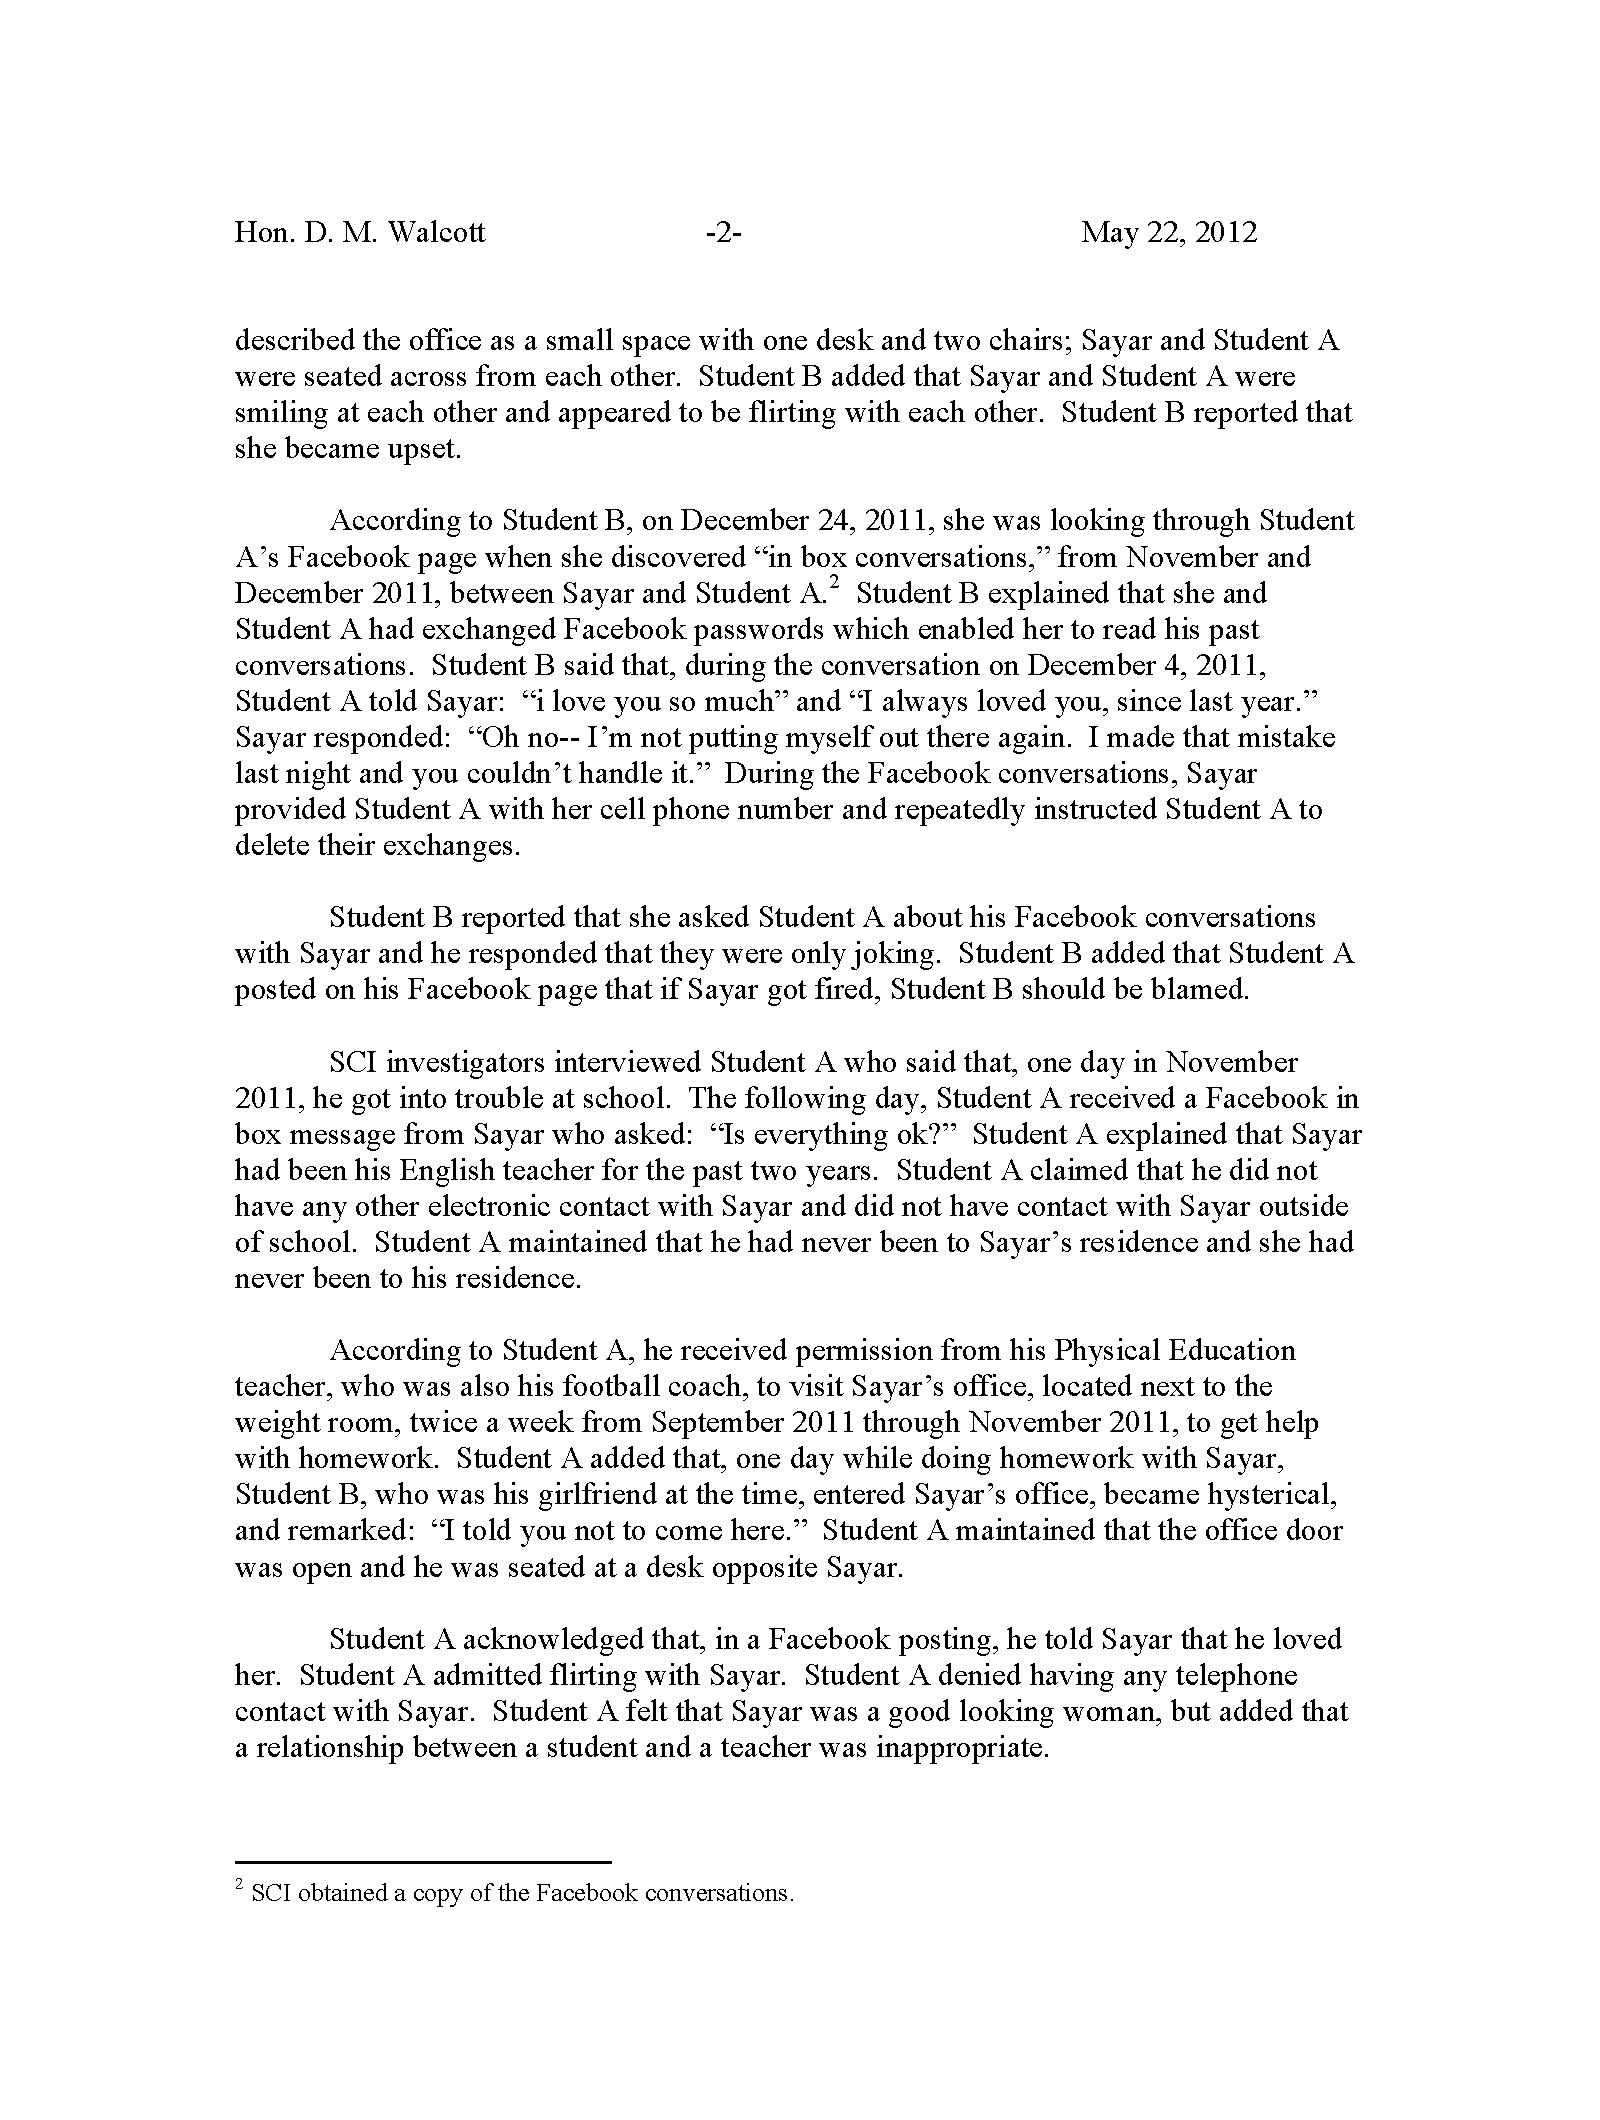 Copy of sayar erin investigative letter2.png